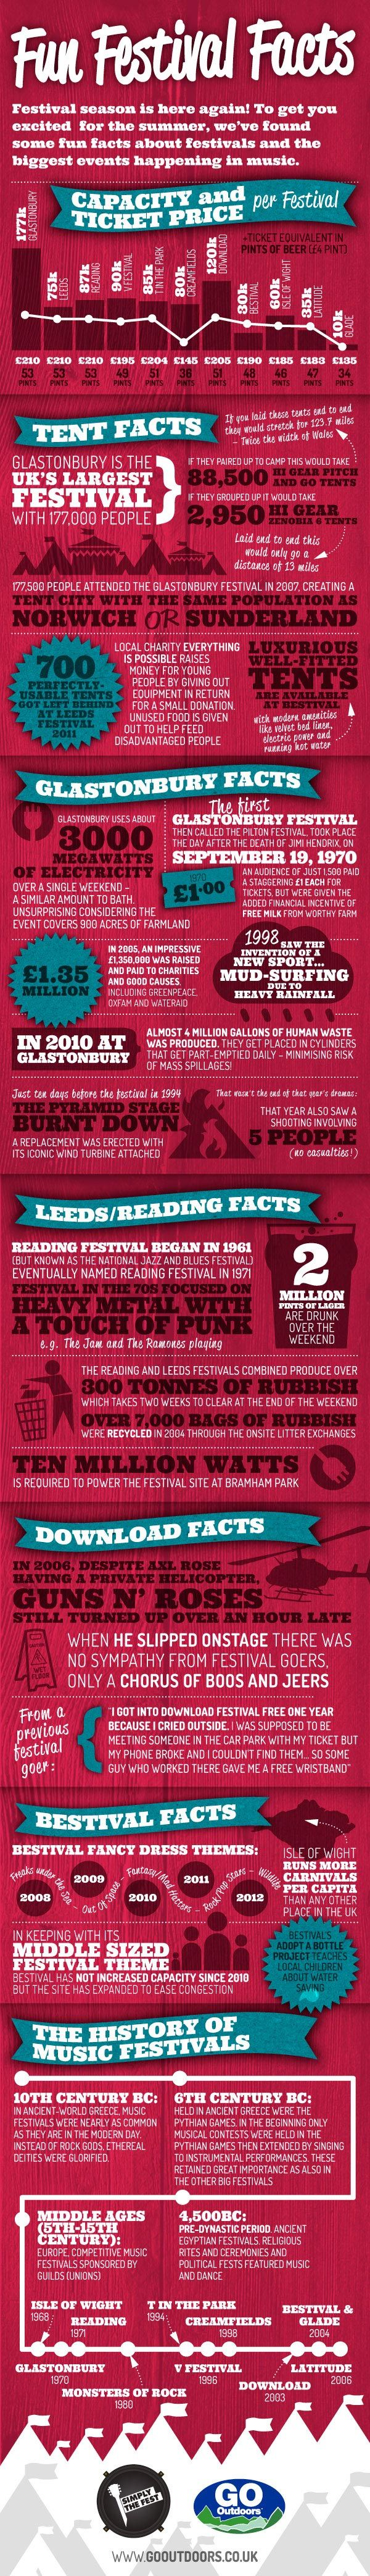 #INFOgraphic > UK Festival Highlights: Go Outdoors have compiled this infographic giving us a snap shot of the biggest music festivals in the UK, as well as a timeline on how it all started. Have a look at capacity, attendance and installation statistics nicely blended with  interesting facts and highlights.  > http://infographicsmania.com/uk-festival-highlights/